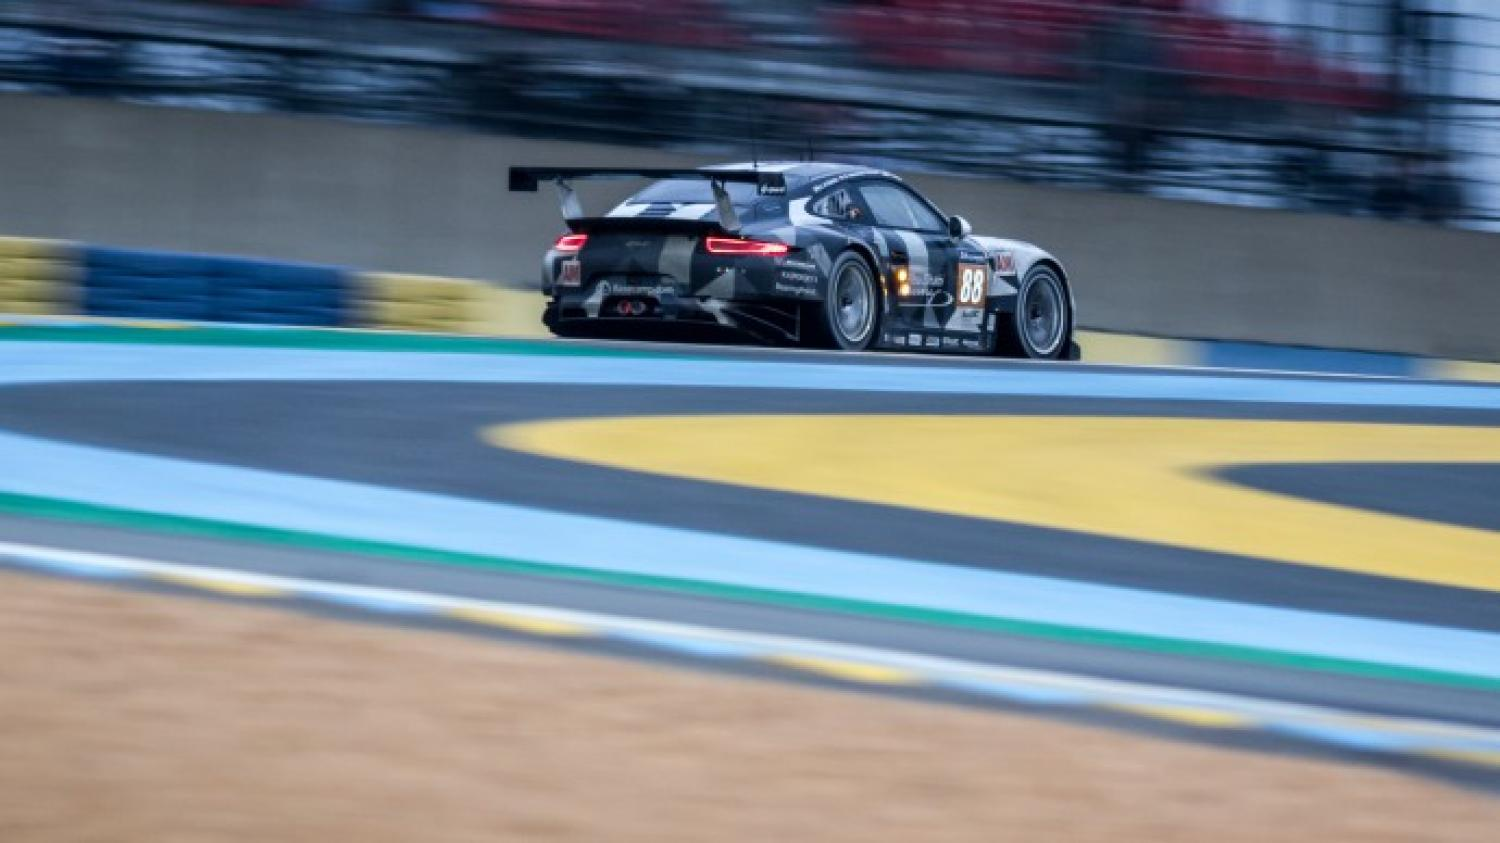 The rundown on the 2016 Le Mans 24 Hours